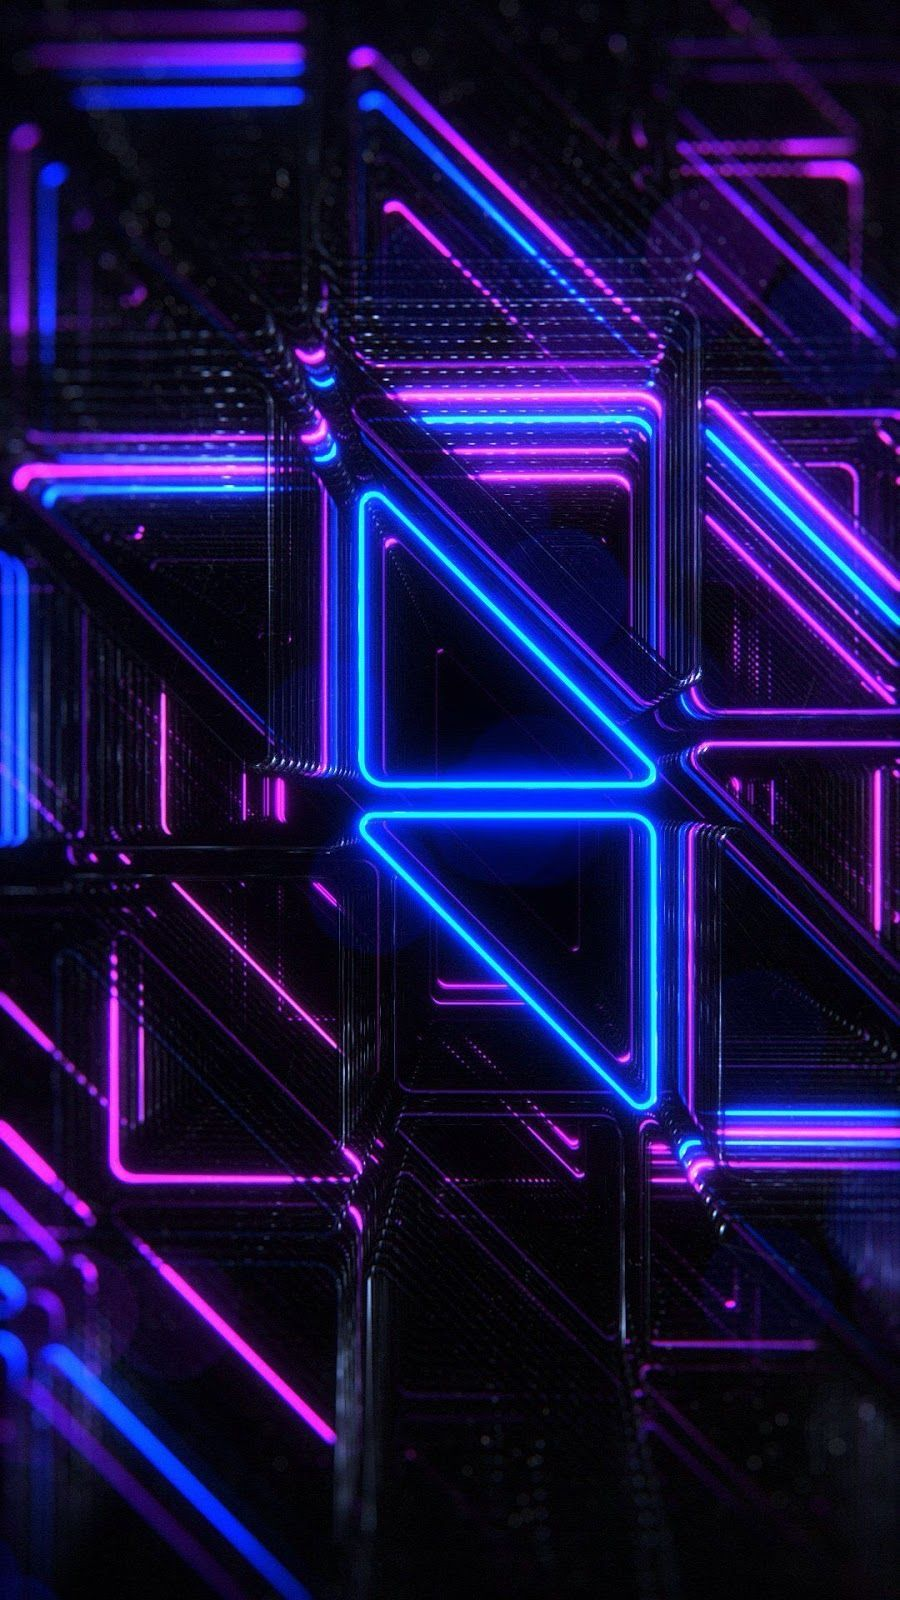 ac5253 neon purple anime purple aesthetic wallpaper desktop